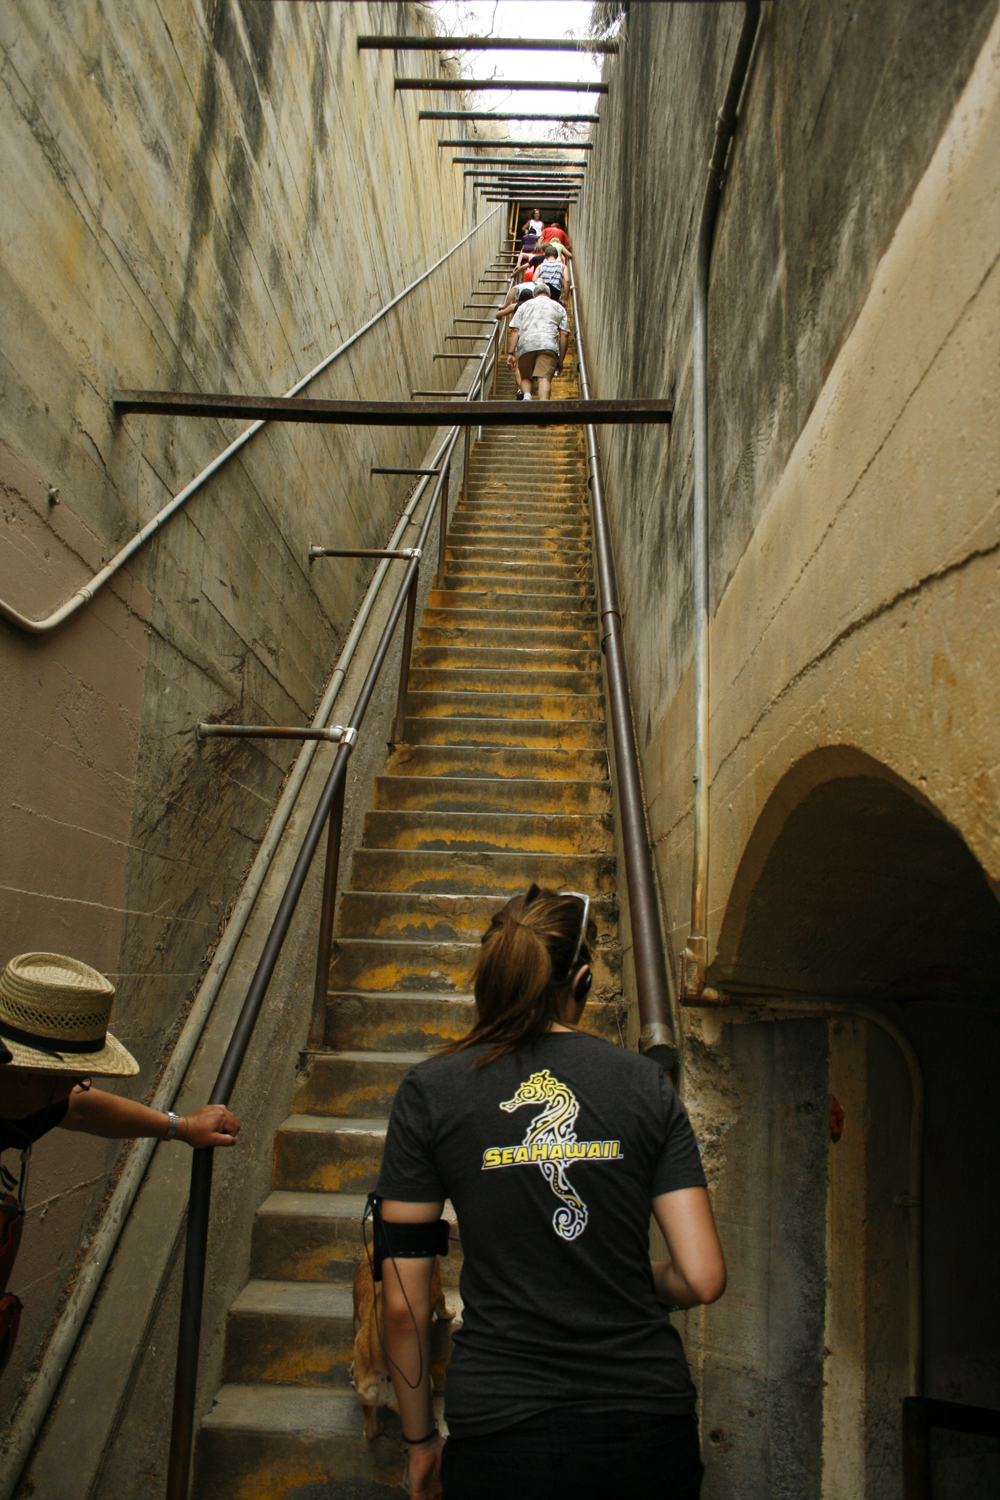 The last set of stairs we had to climb to get to the top of Diamond Head.